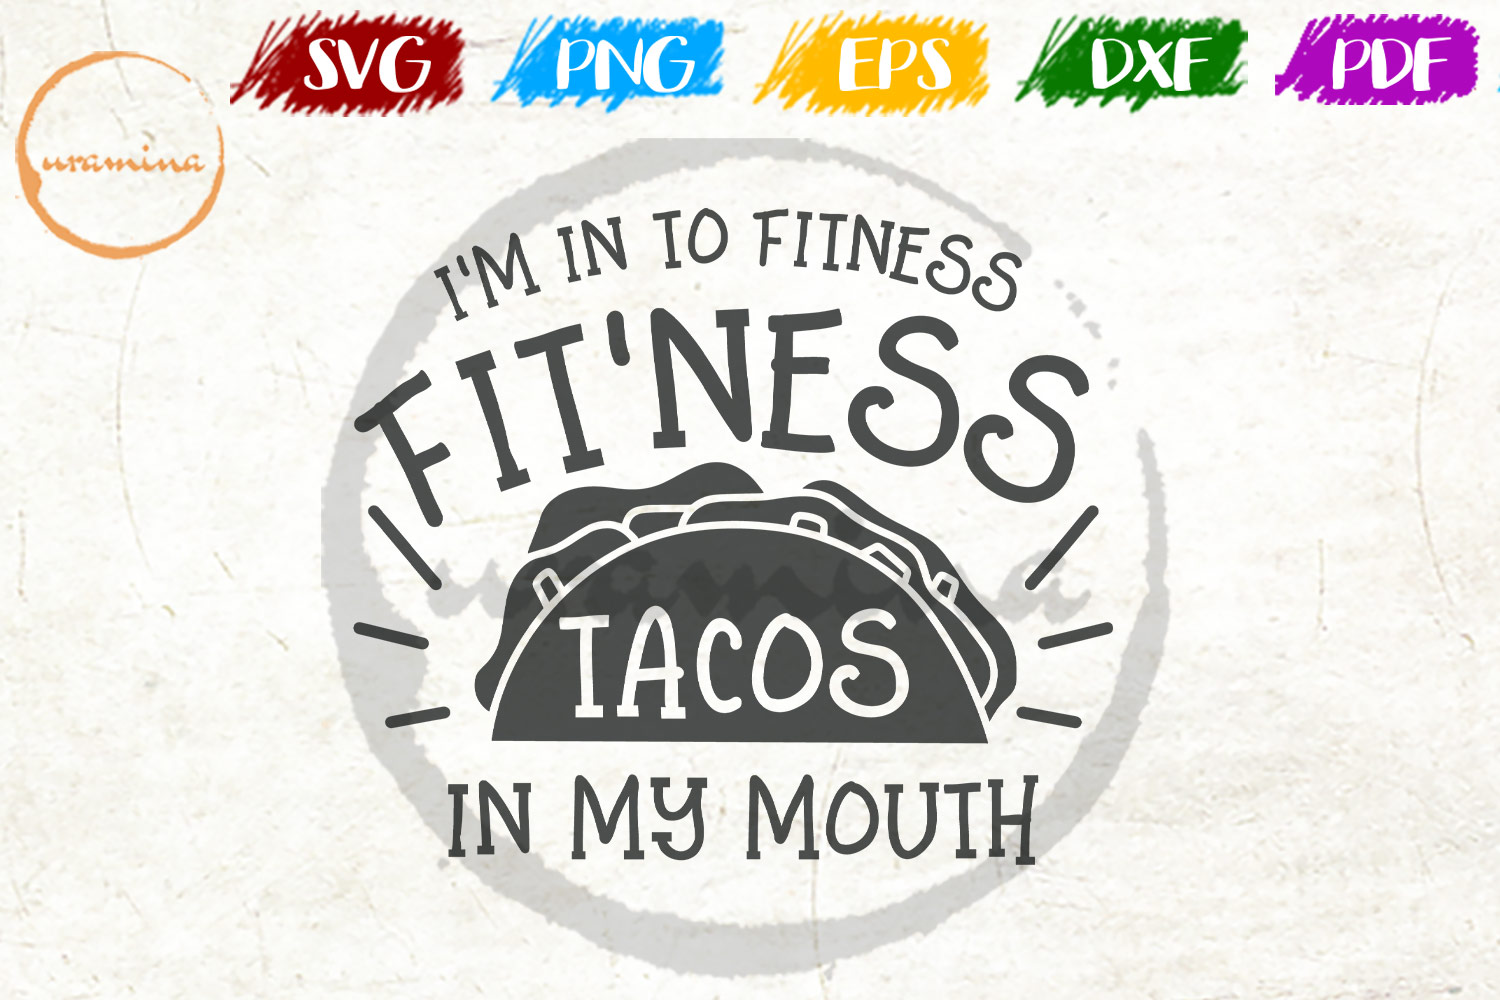 Download Free I M In To Fitness Fit Ness Tacos Graphic By Uramina Creative for Cricut Explore, Silhouette and other cutting machines.